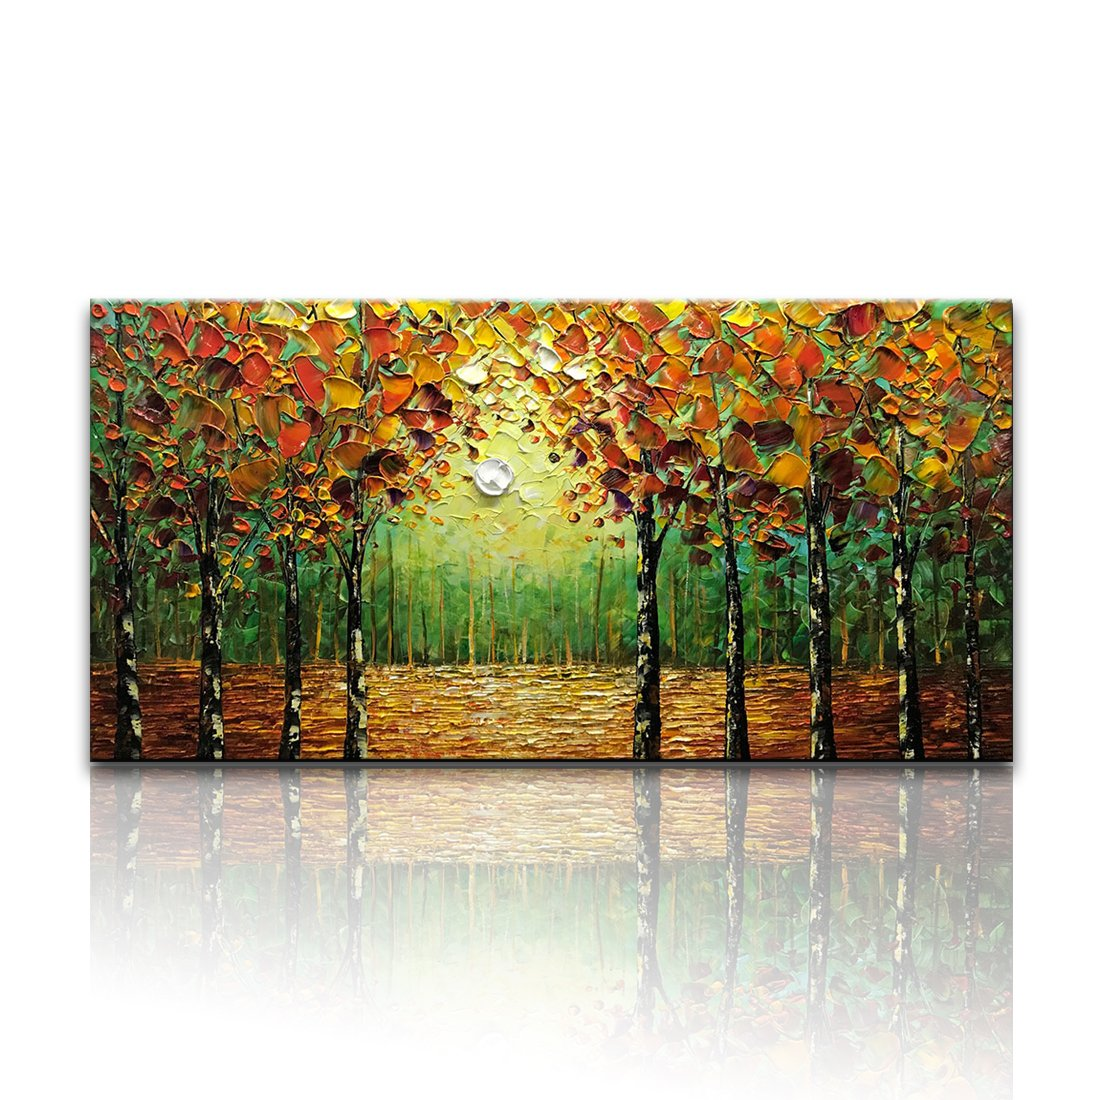 Desihum - 100% Hand-Painted Oil Painting Landscape Trees Forest Wall Art Modern Abstract Contemporary Artwork Stretched Wood Framed Ready Hang Home Decoration Wall Decor Living Room Hotel(20''x40'') by Desihum (Image #1)